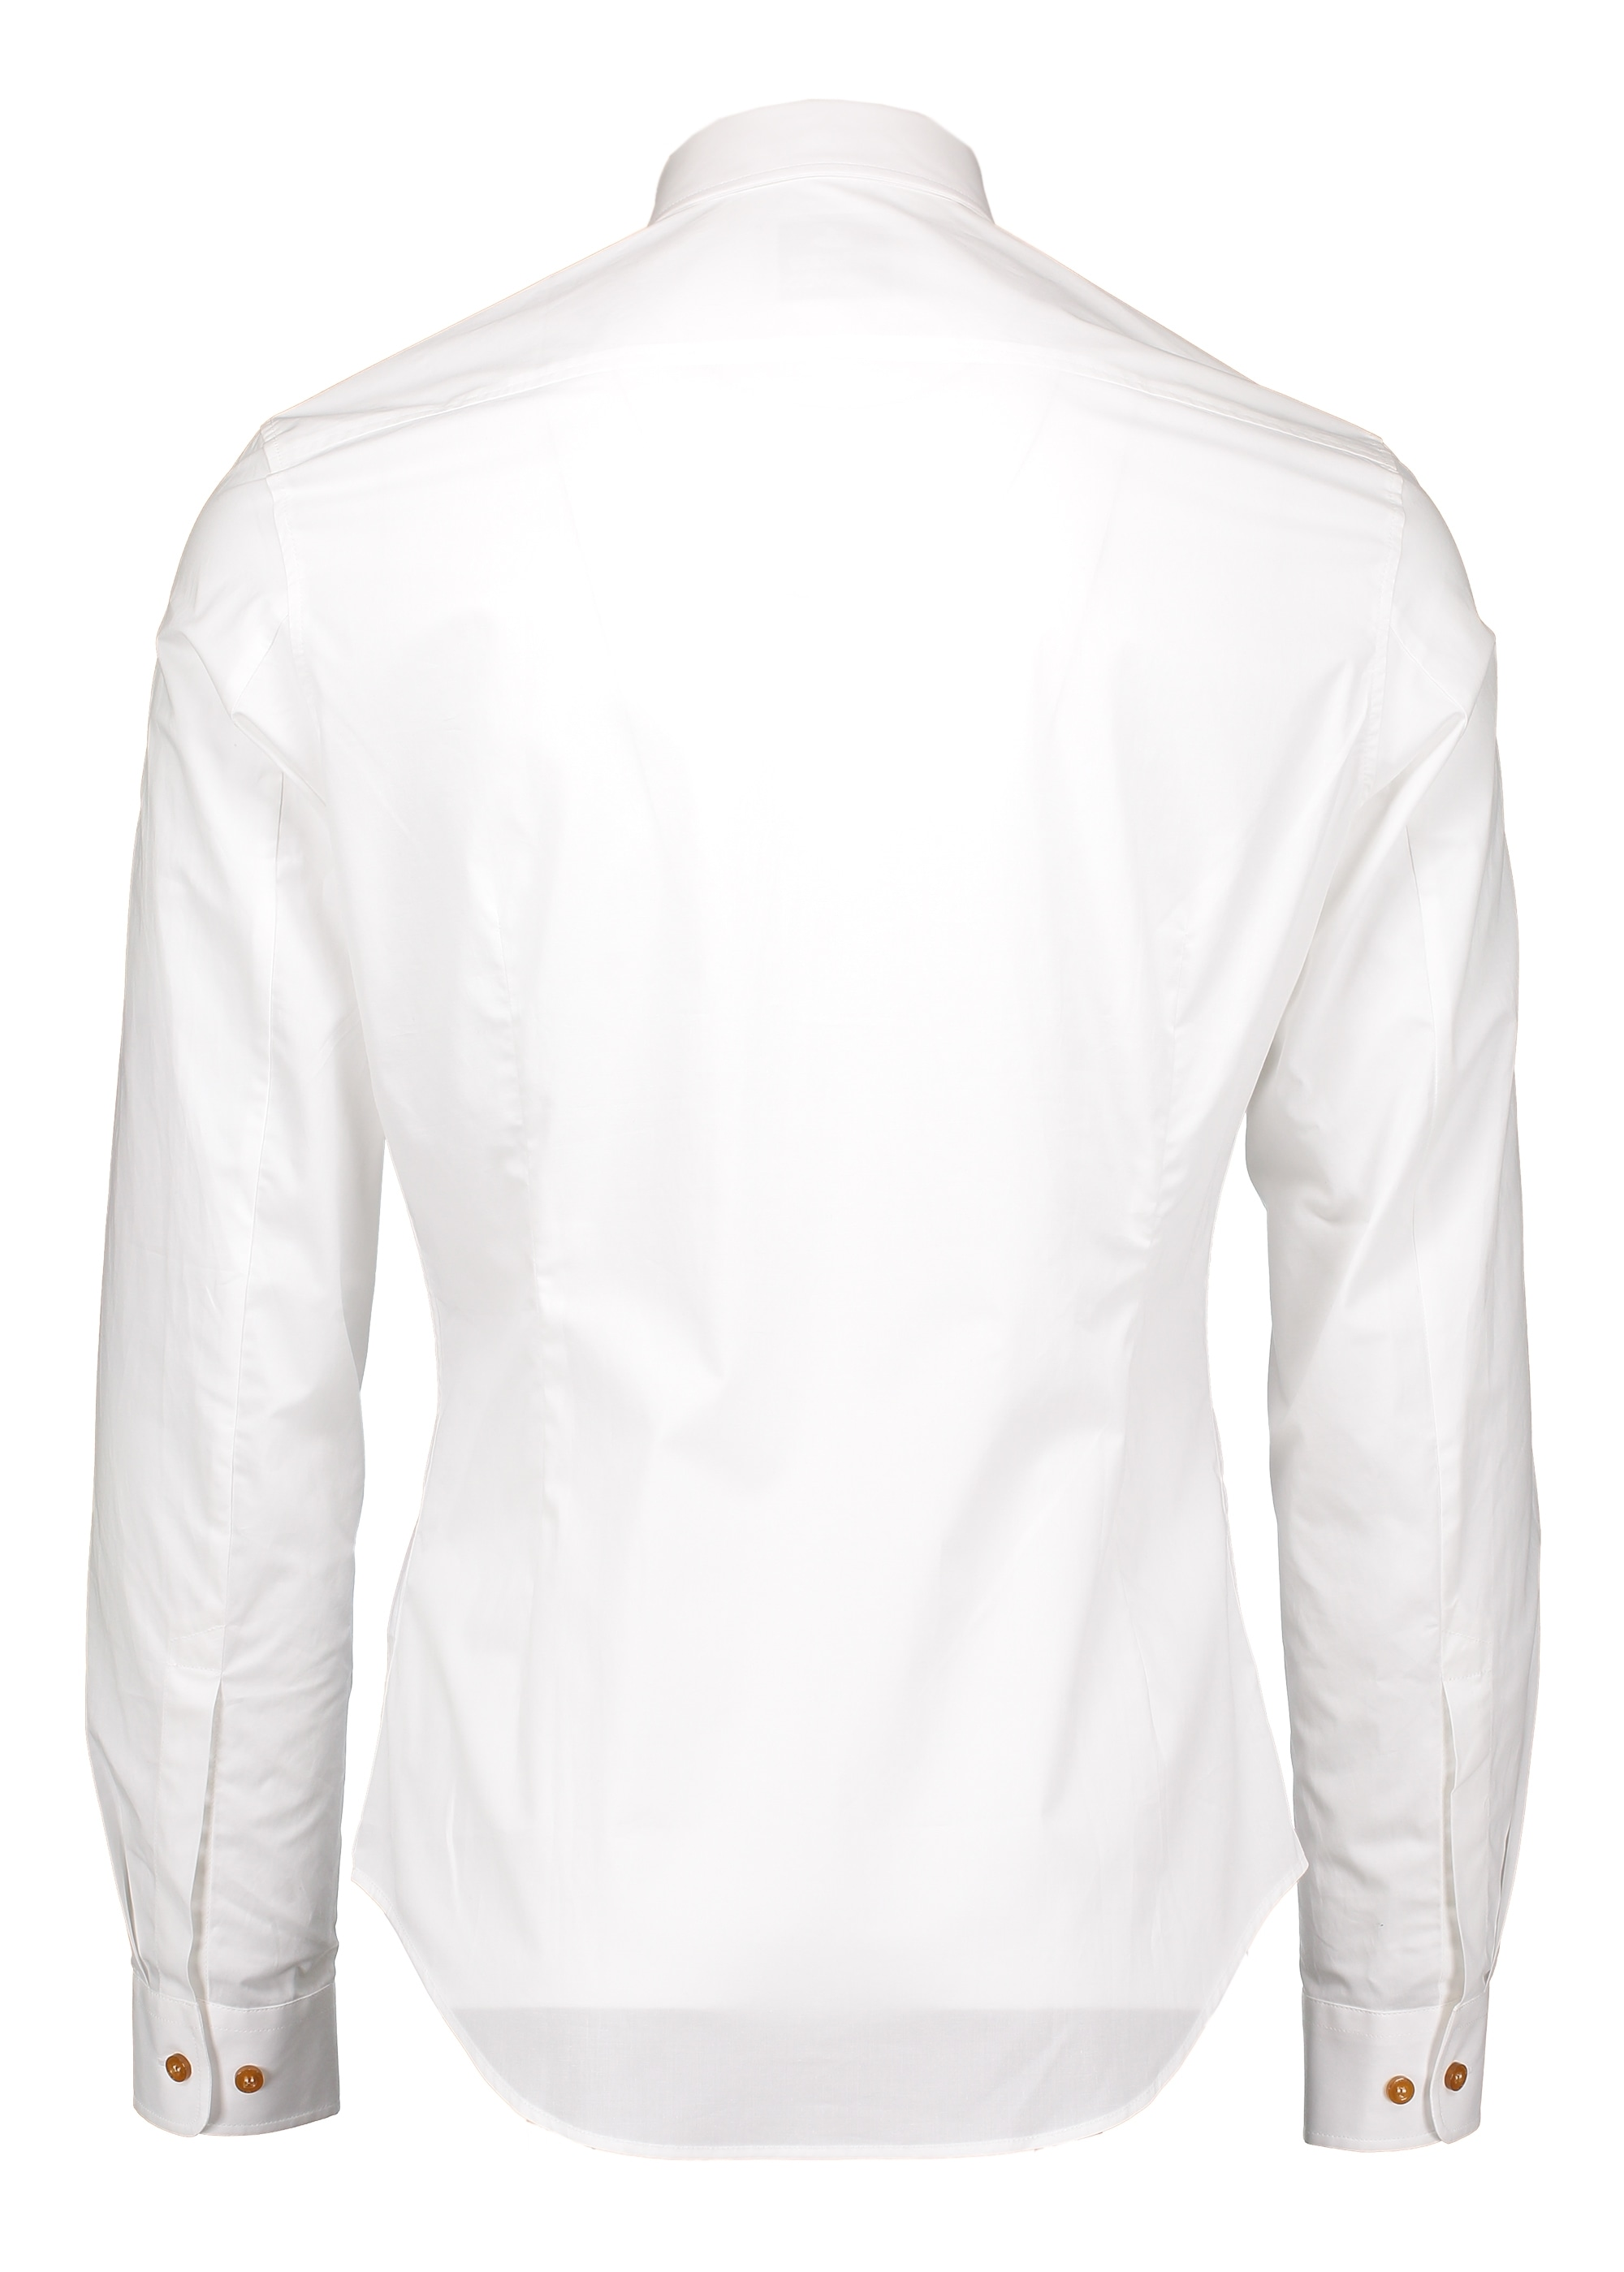 Embroidered logo shirt white from triads uk for Embroidered logos on shirts